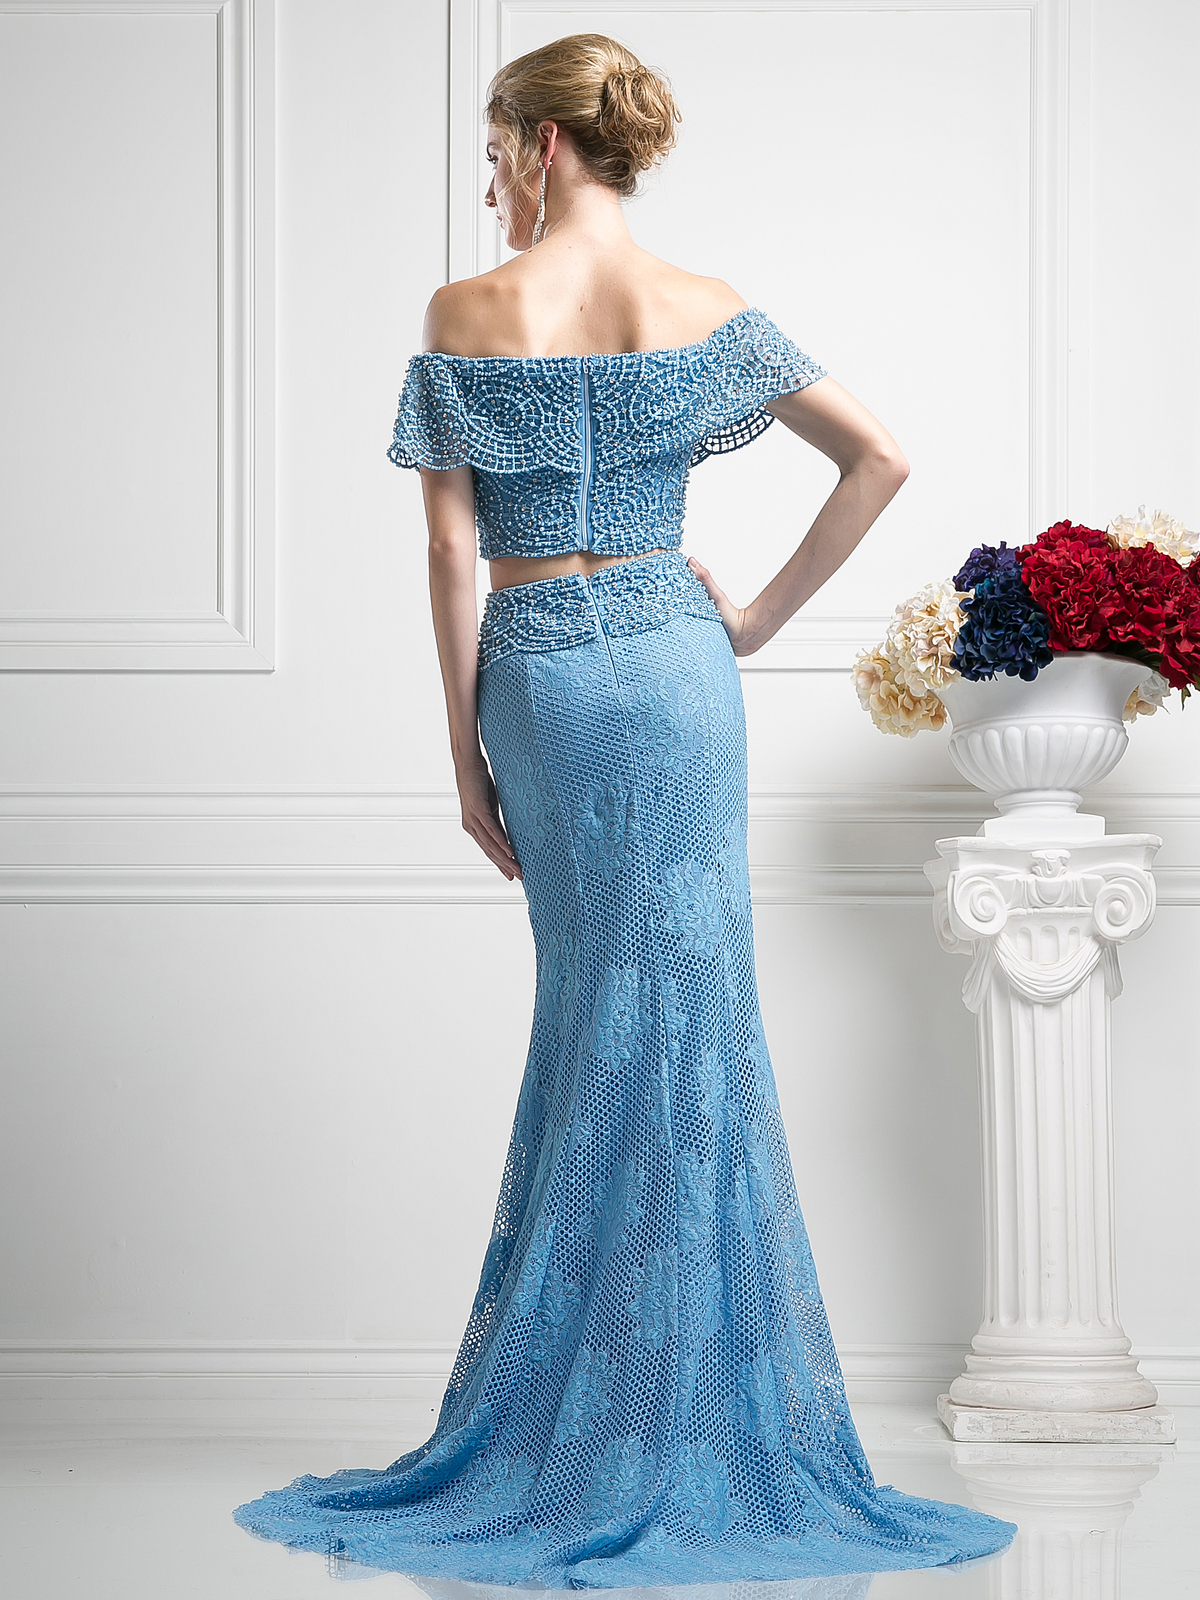 Two Piece Crochet Beading Mermaid Prom Dress | Sung Boutique L.A.